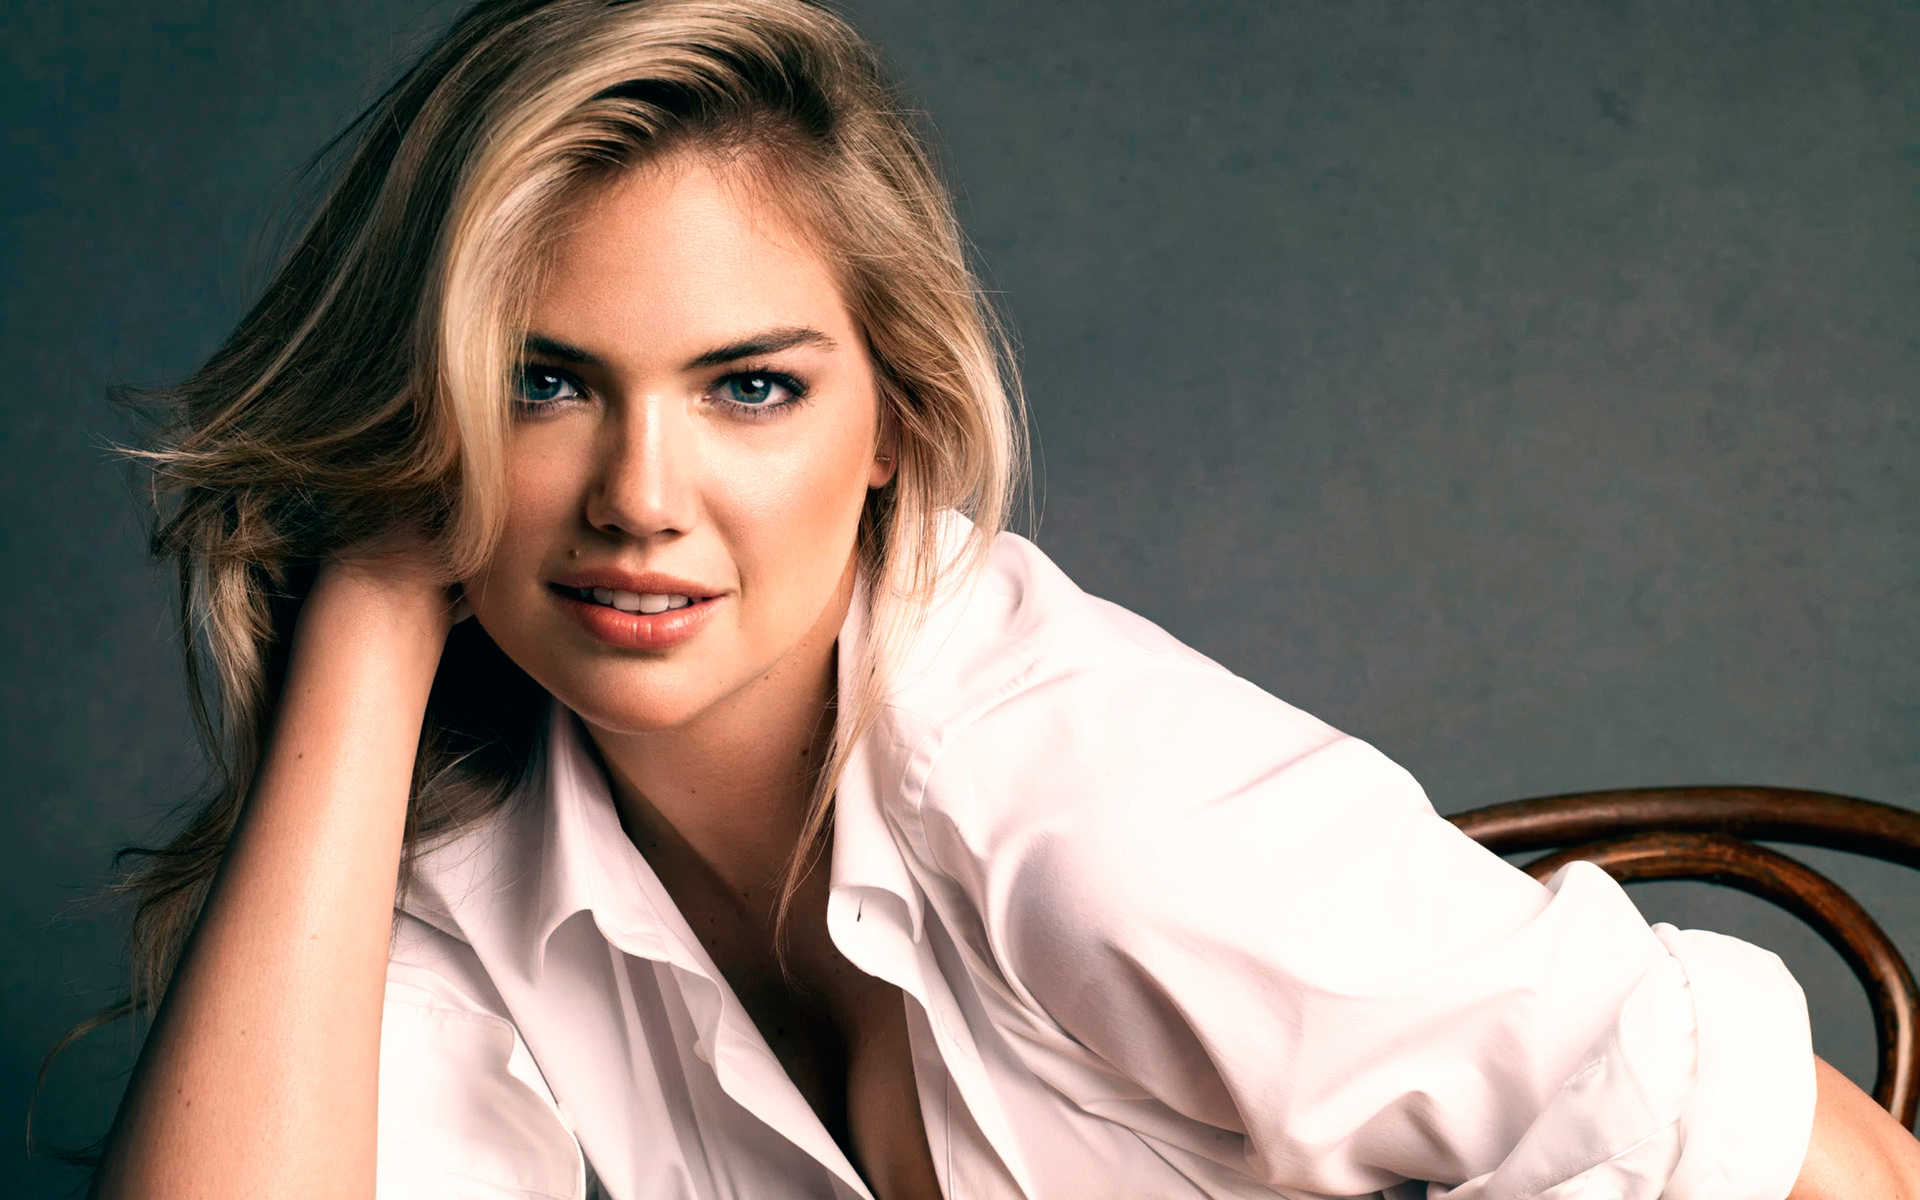 sexy kate upton wallpaper 60214